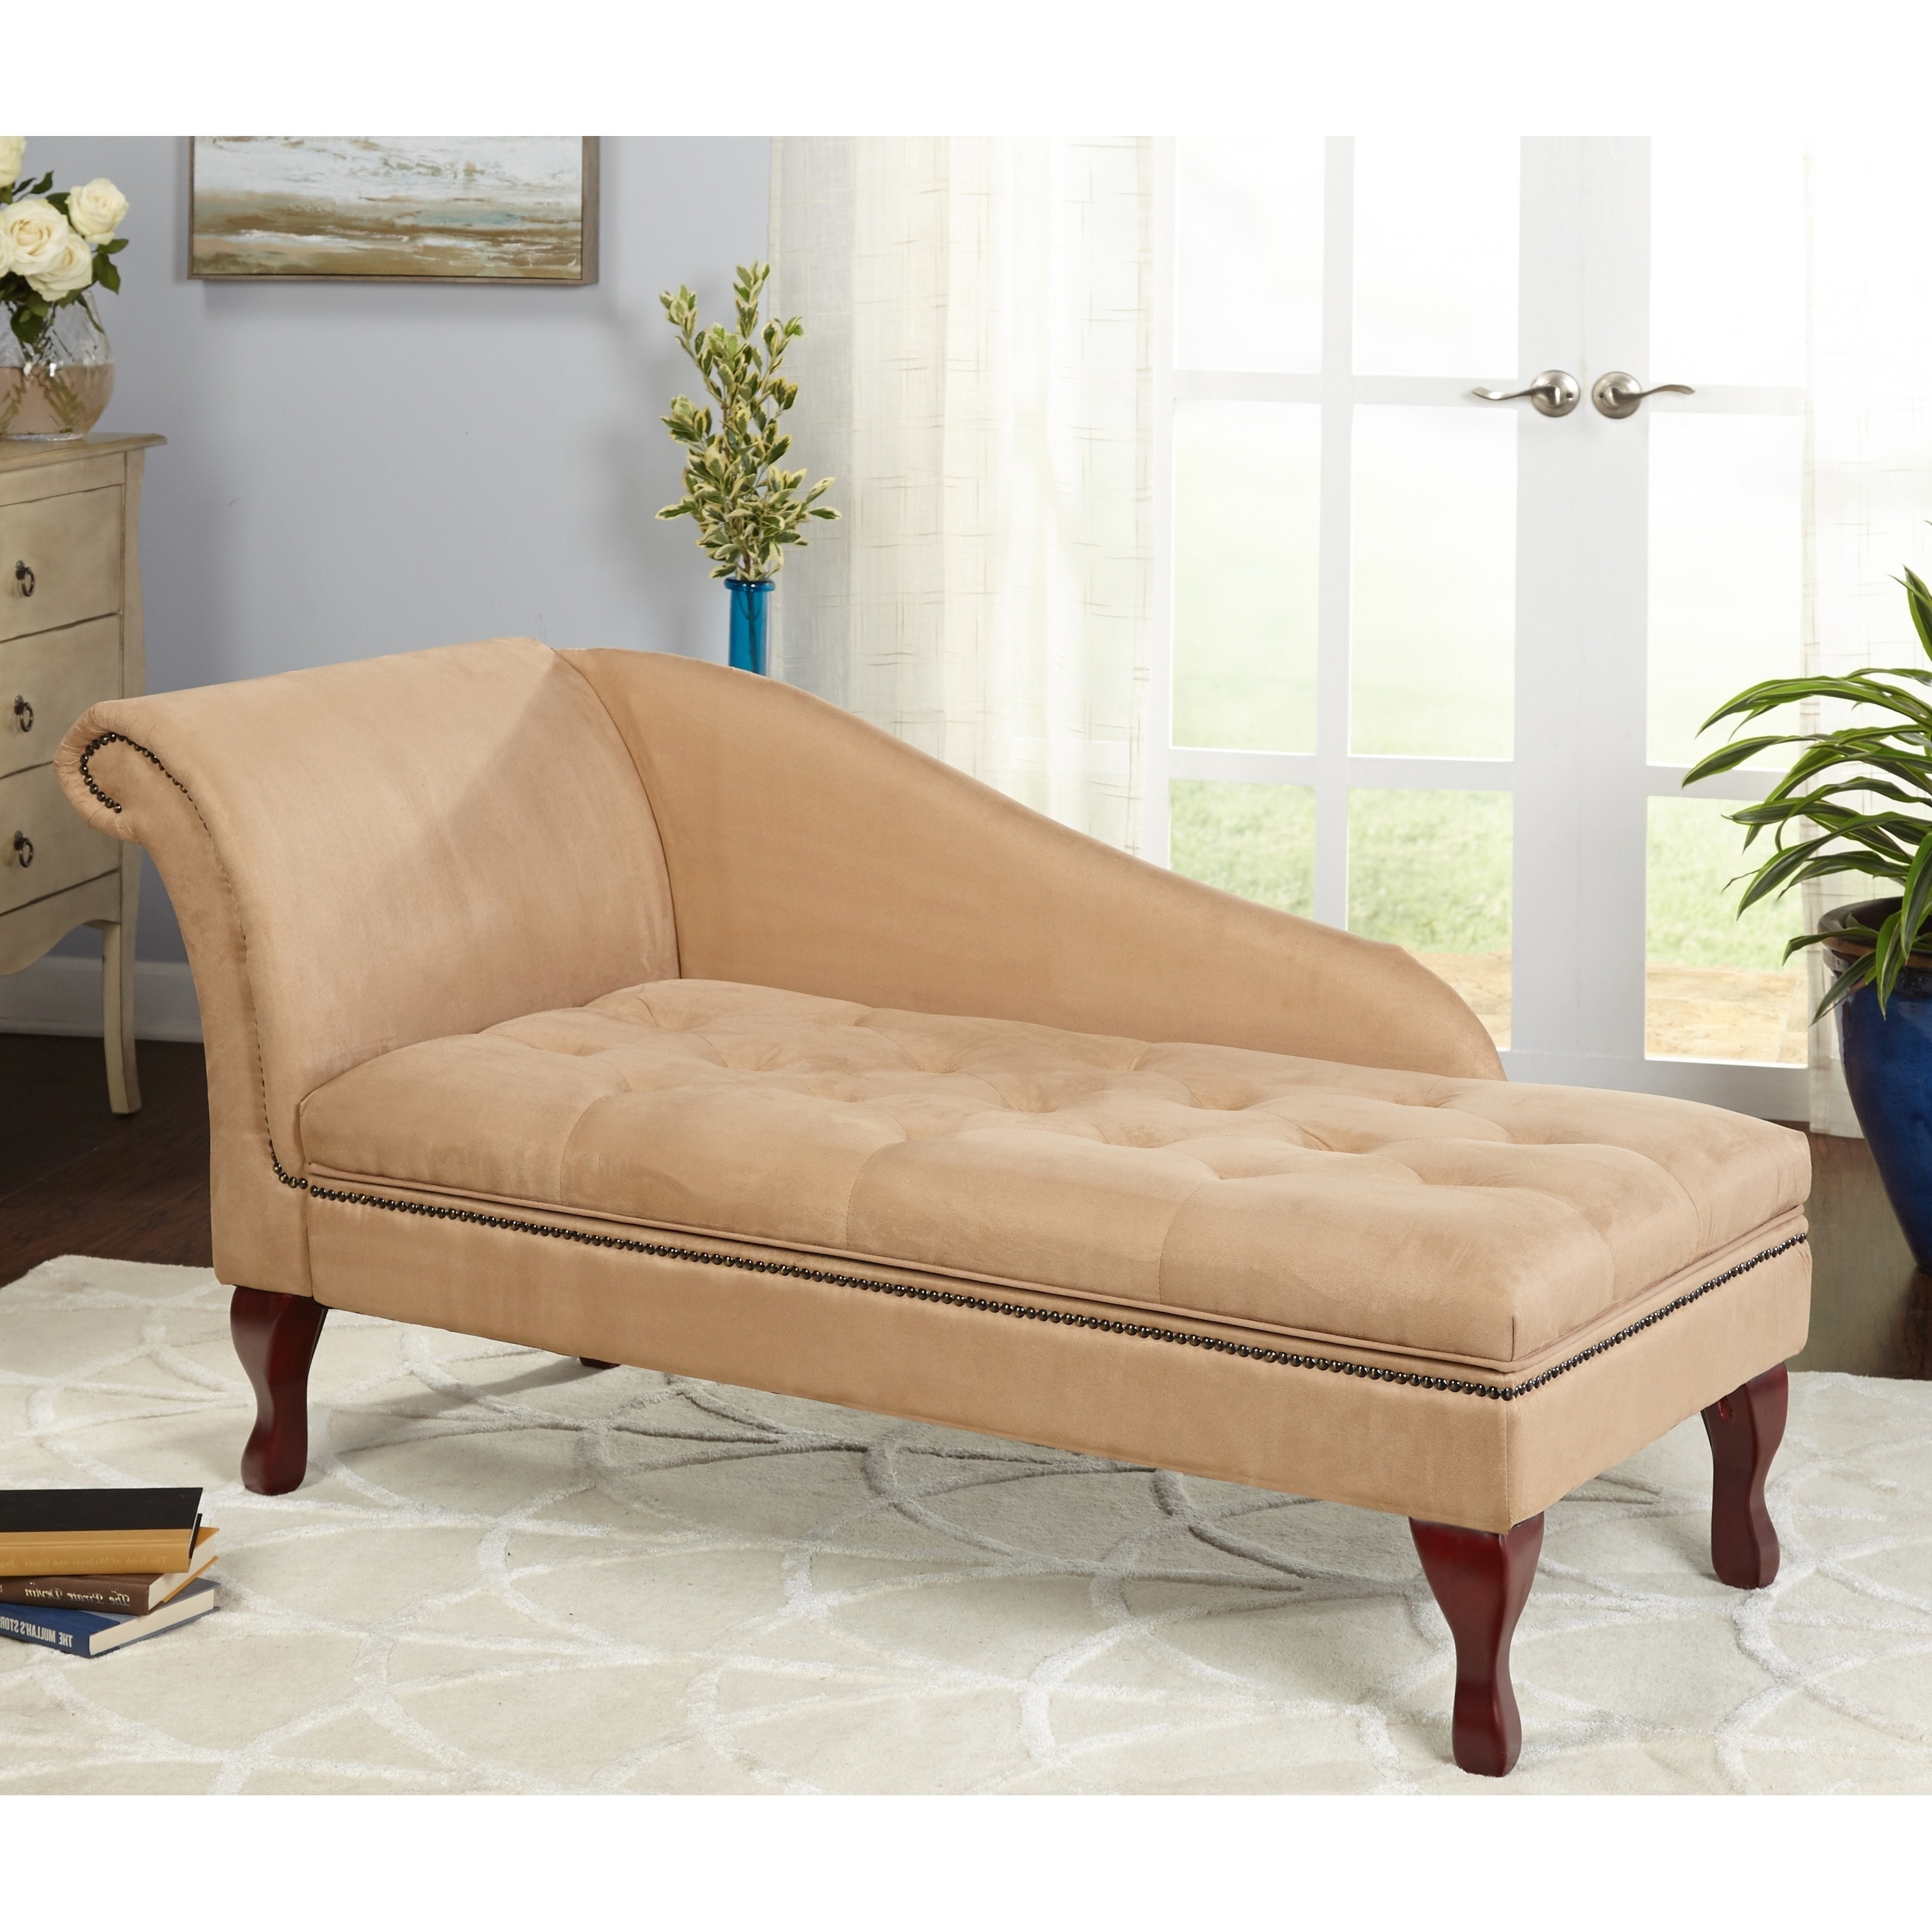 Chaise Lounges With Storage With Regard To Famous Simple Living Tan Chaise Lounge With Storage – N/a – Free Shipping (View 2 of 15)